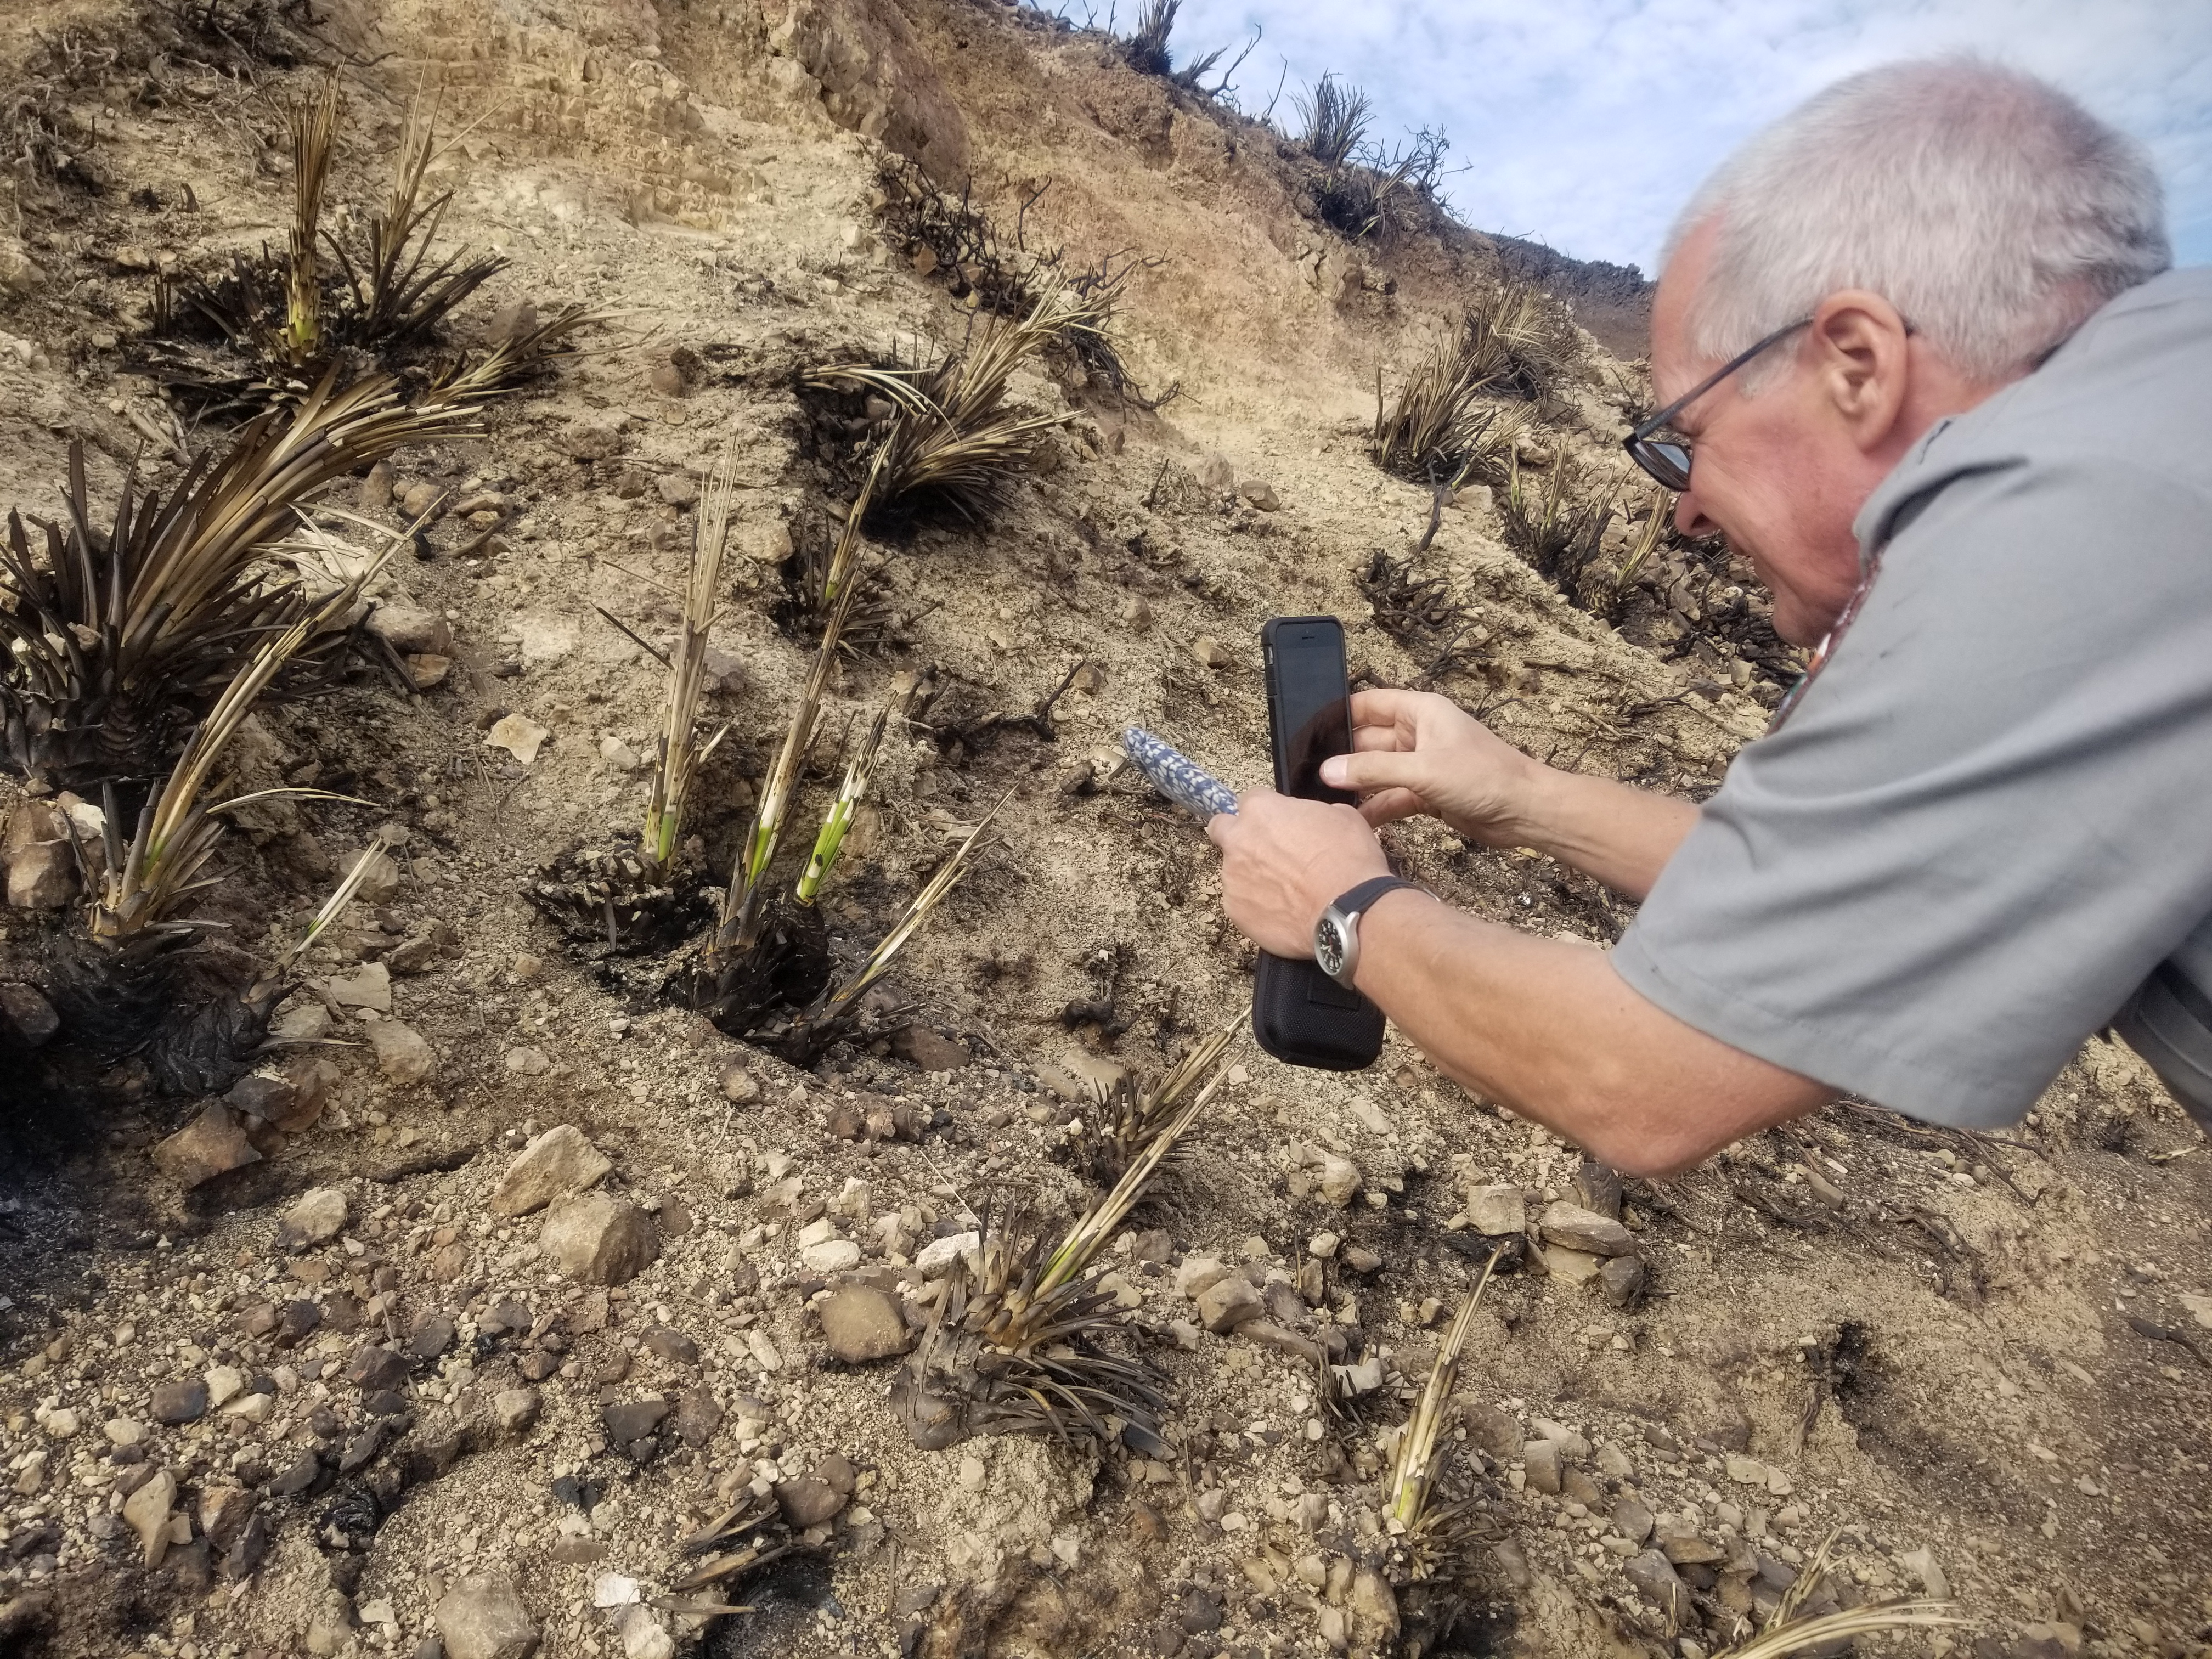 John Tiszler, a supervisory NPS plant biologist who has worked at Santa Monica Mountains National Recreation Area for 22 years, excitedly documenting his find.